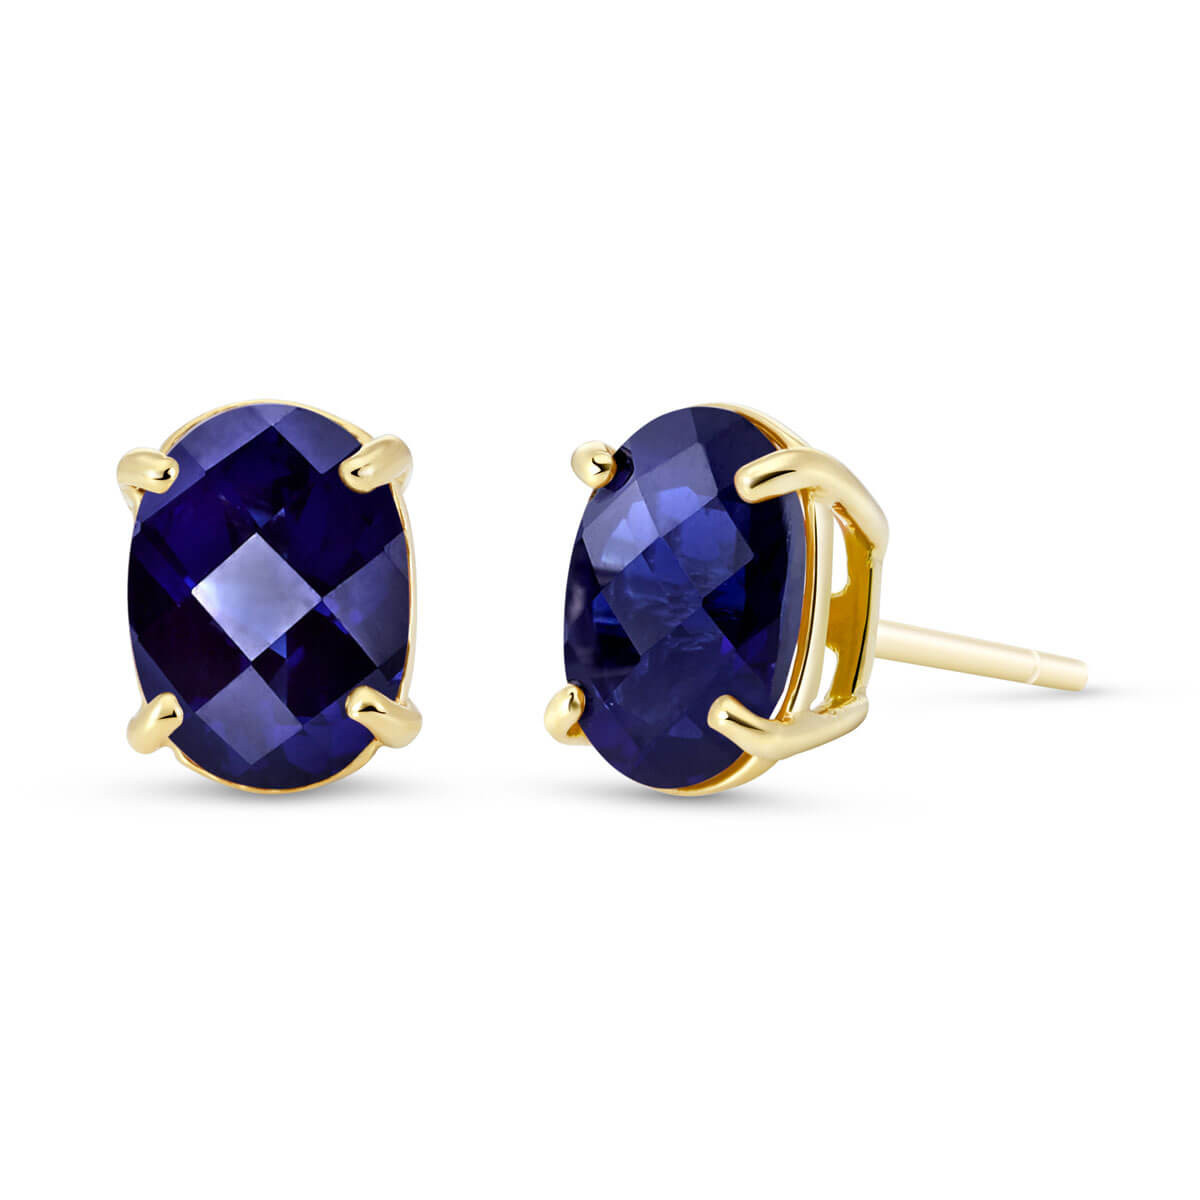 Sapphire Stud Earrings 2 ctw in 9ct Gold